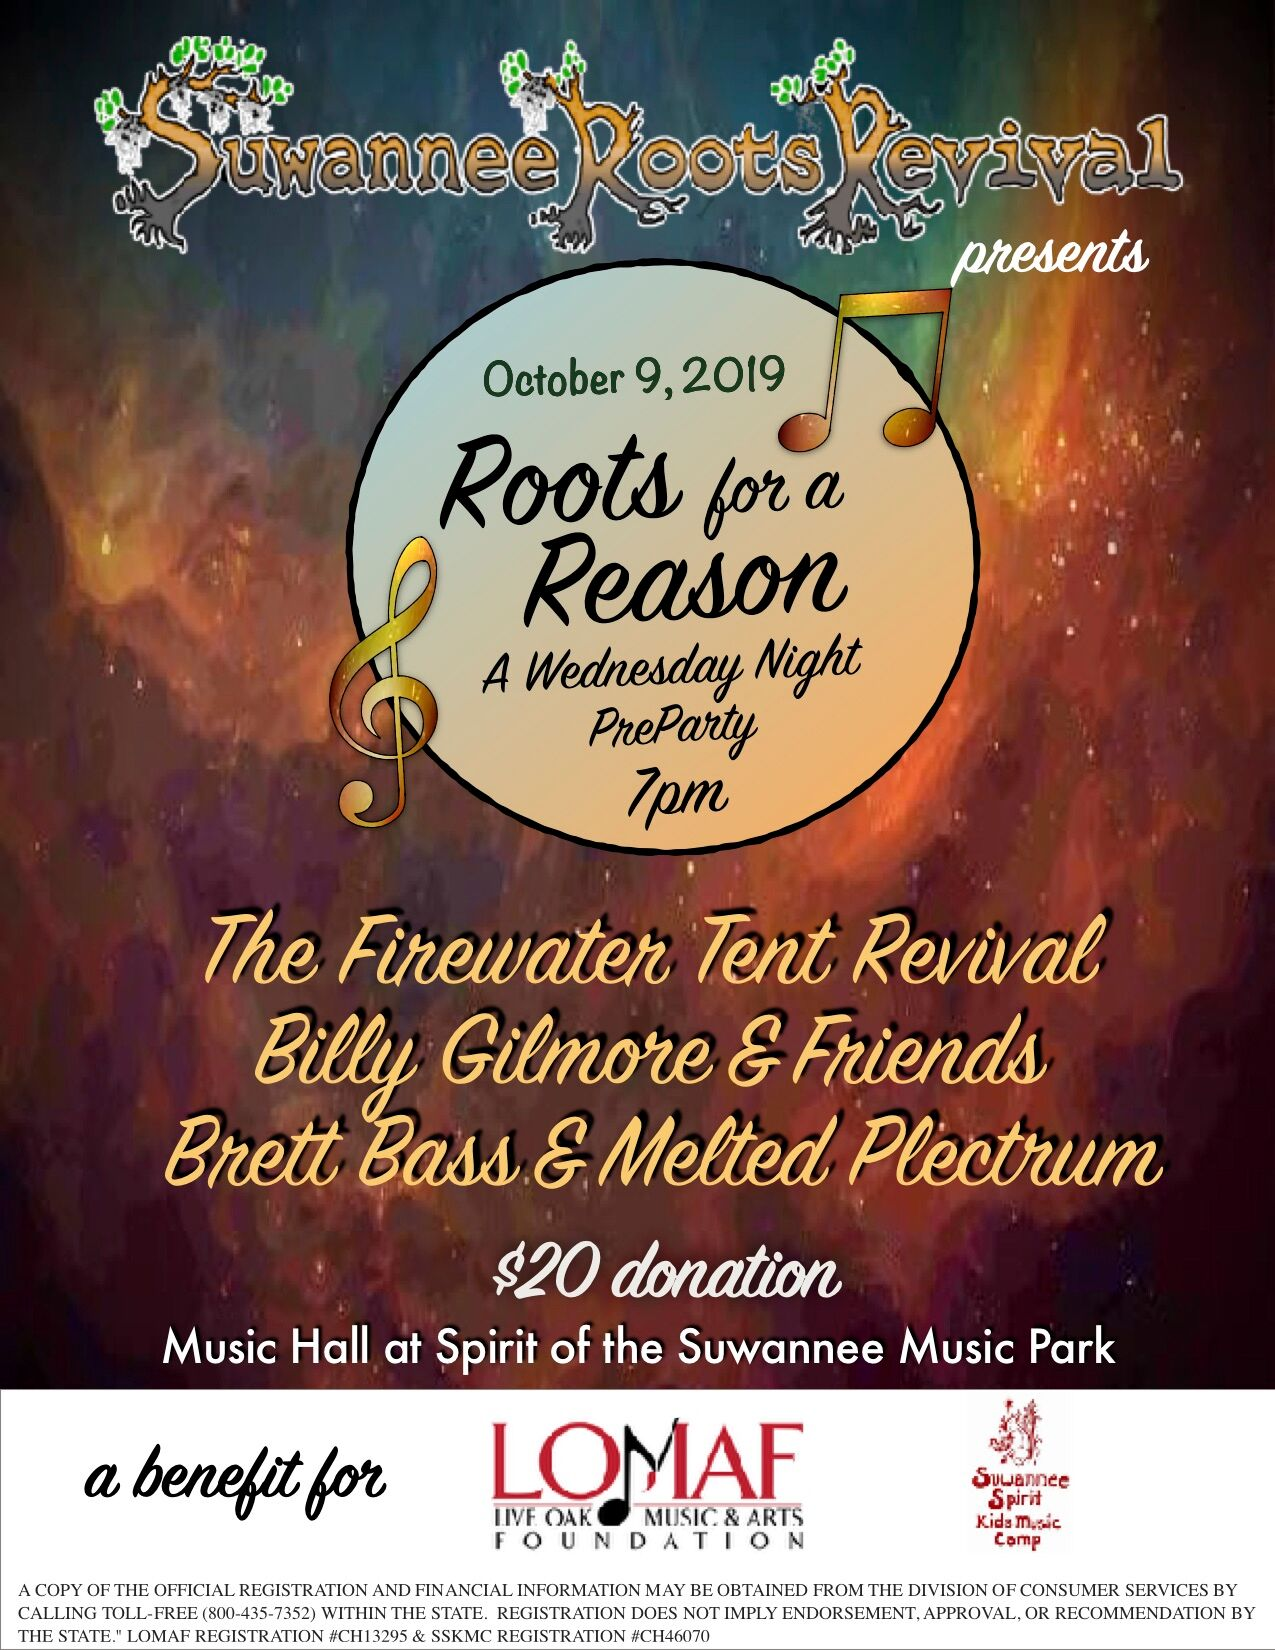 """Roots For A Reason"" @ Suwannee Roots Revival"